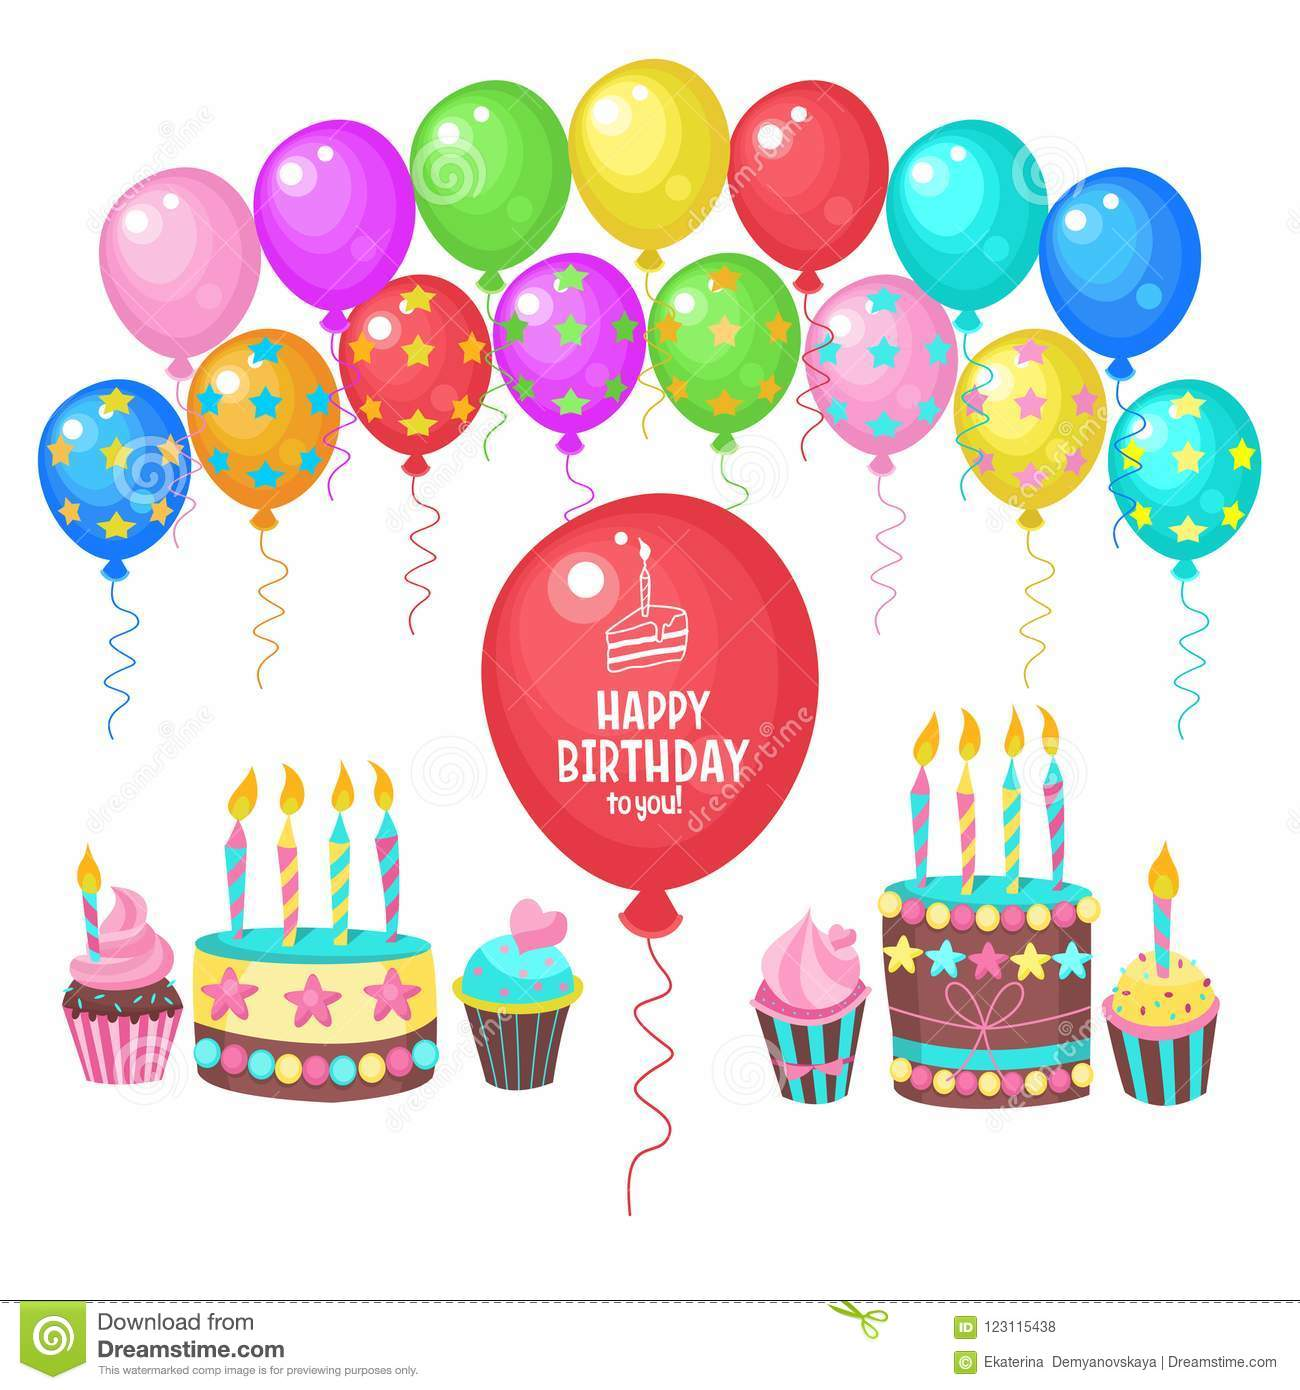 Happy BirthdayGreeting Card Many Colorful Balloons Birthday Cakes With Candles